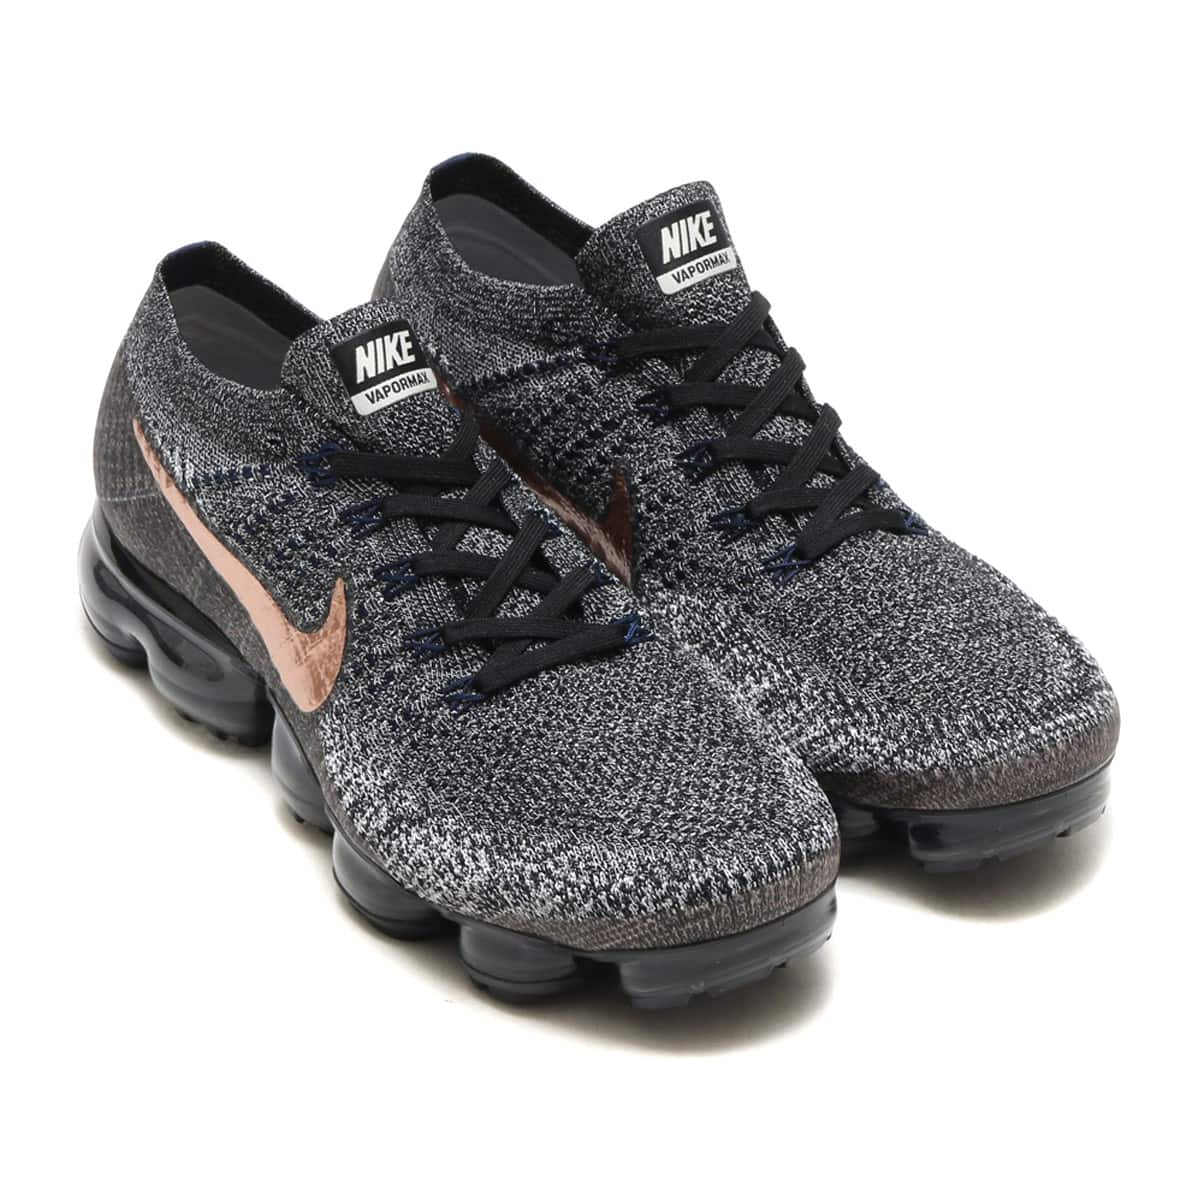 NIKE AIR VAPORMAX FLYKNIT  BLACK/MTLC RED BRONZE-COLLEGE NAVY_photo_large